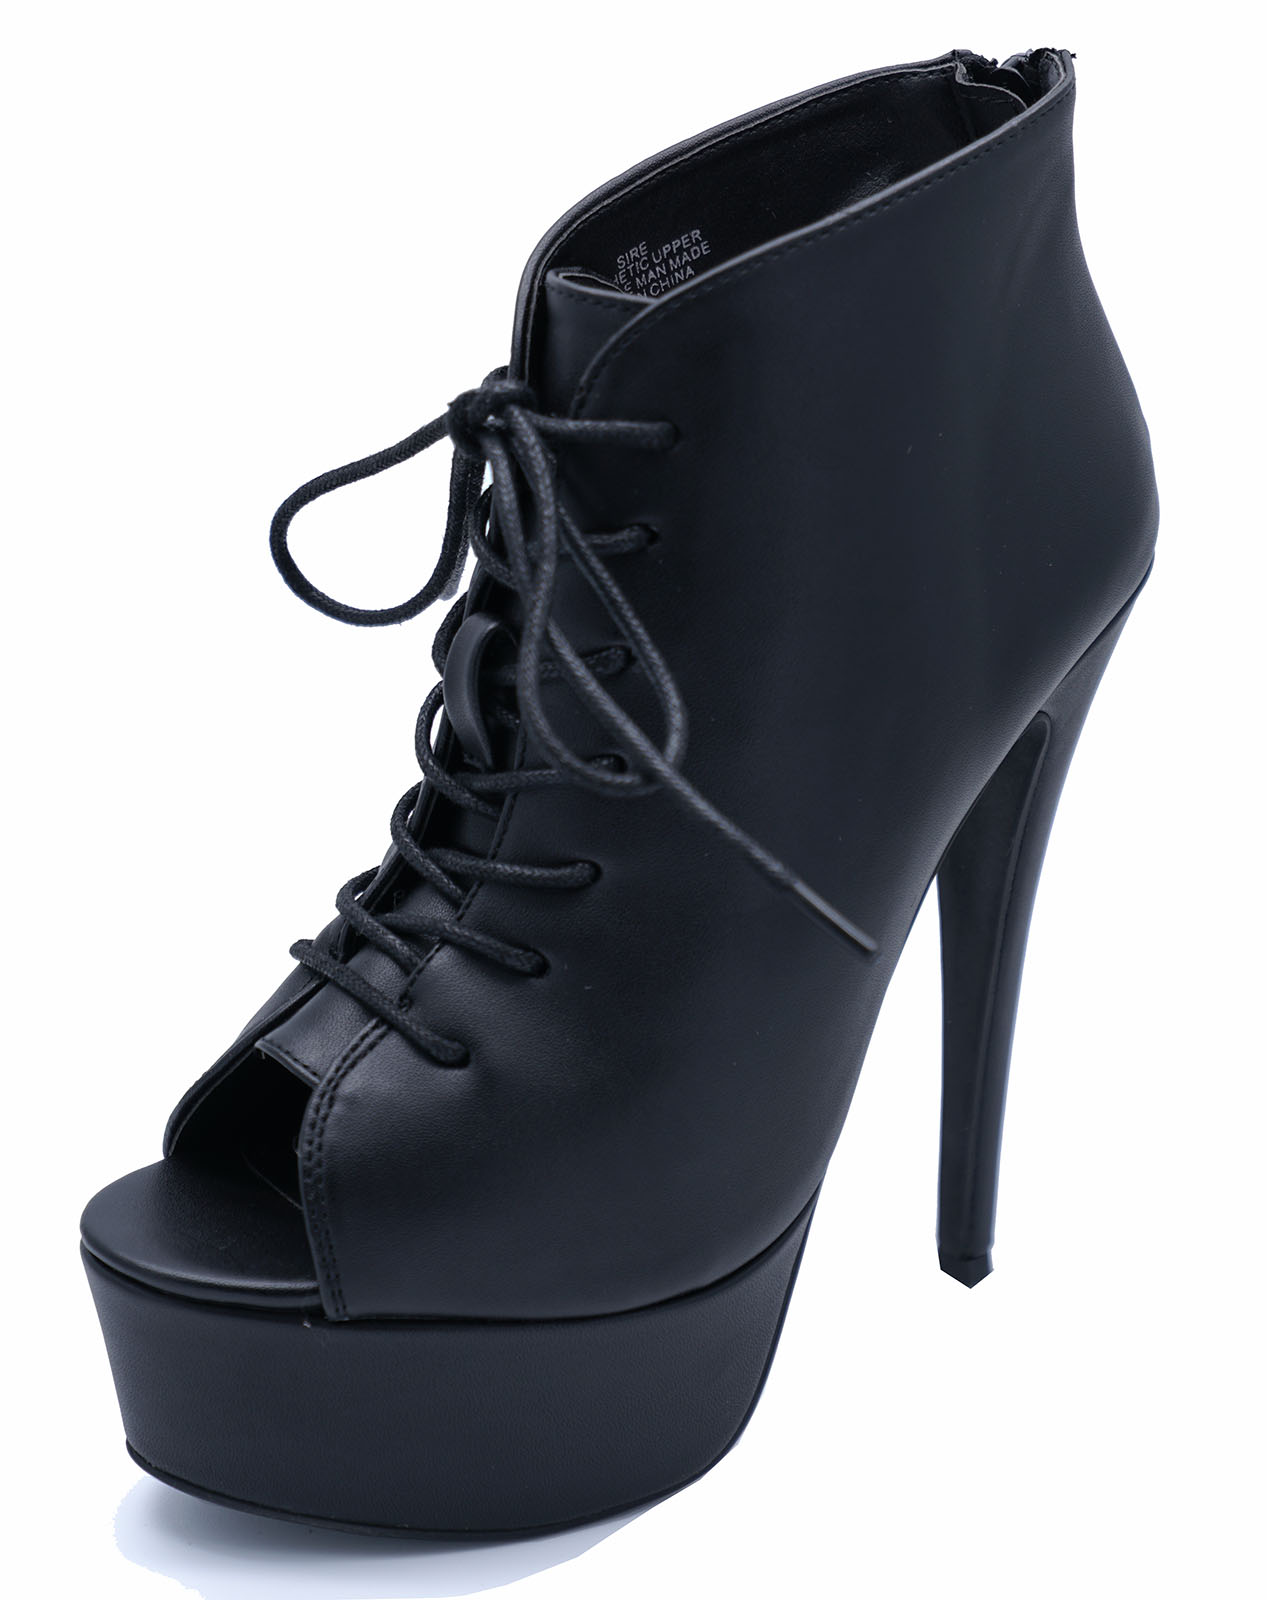 black zip up platform peep toe lace up ankle high